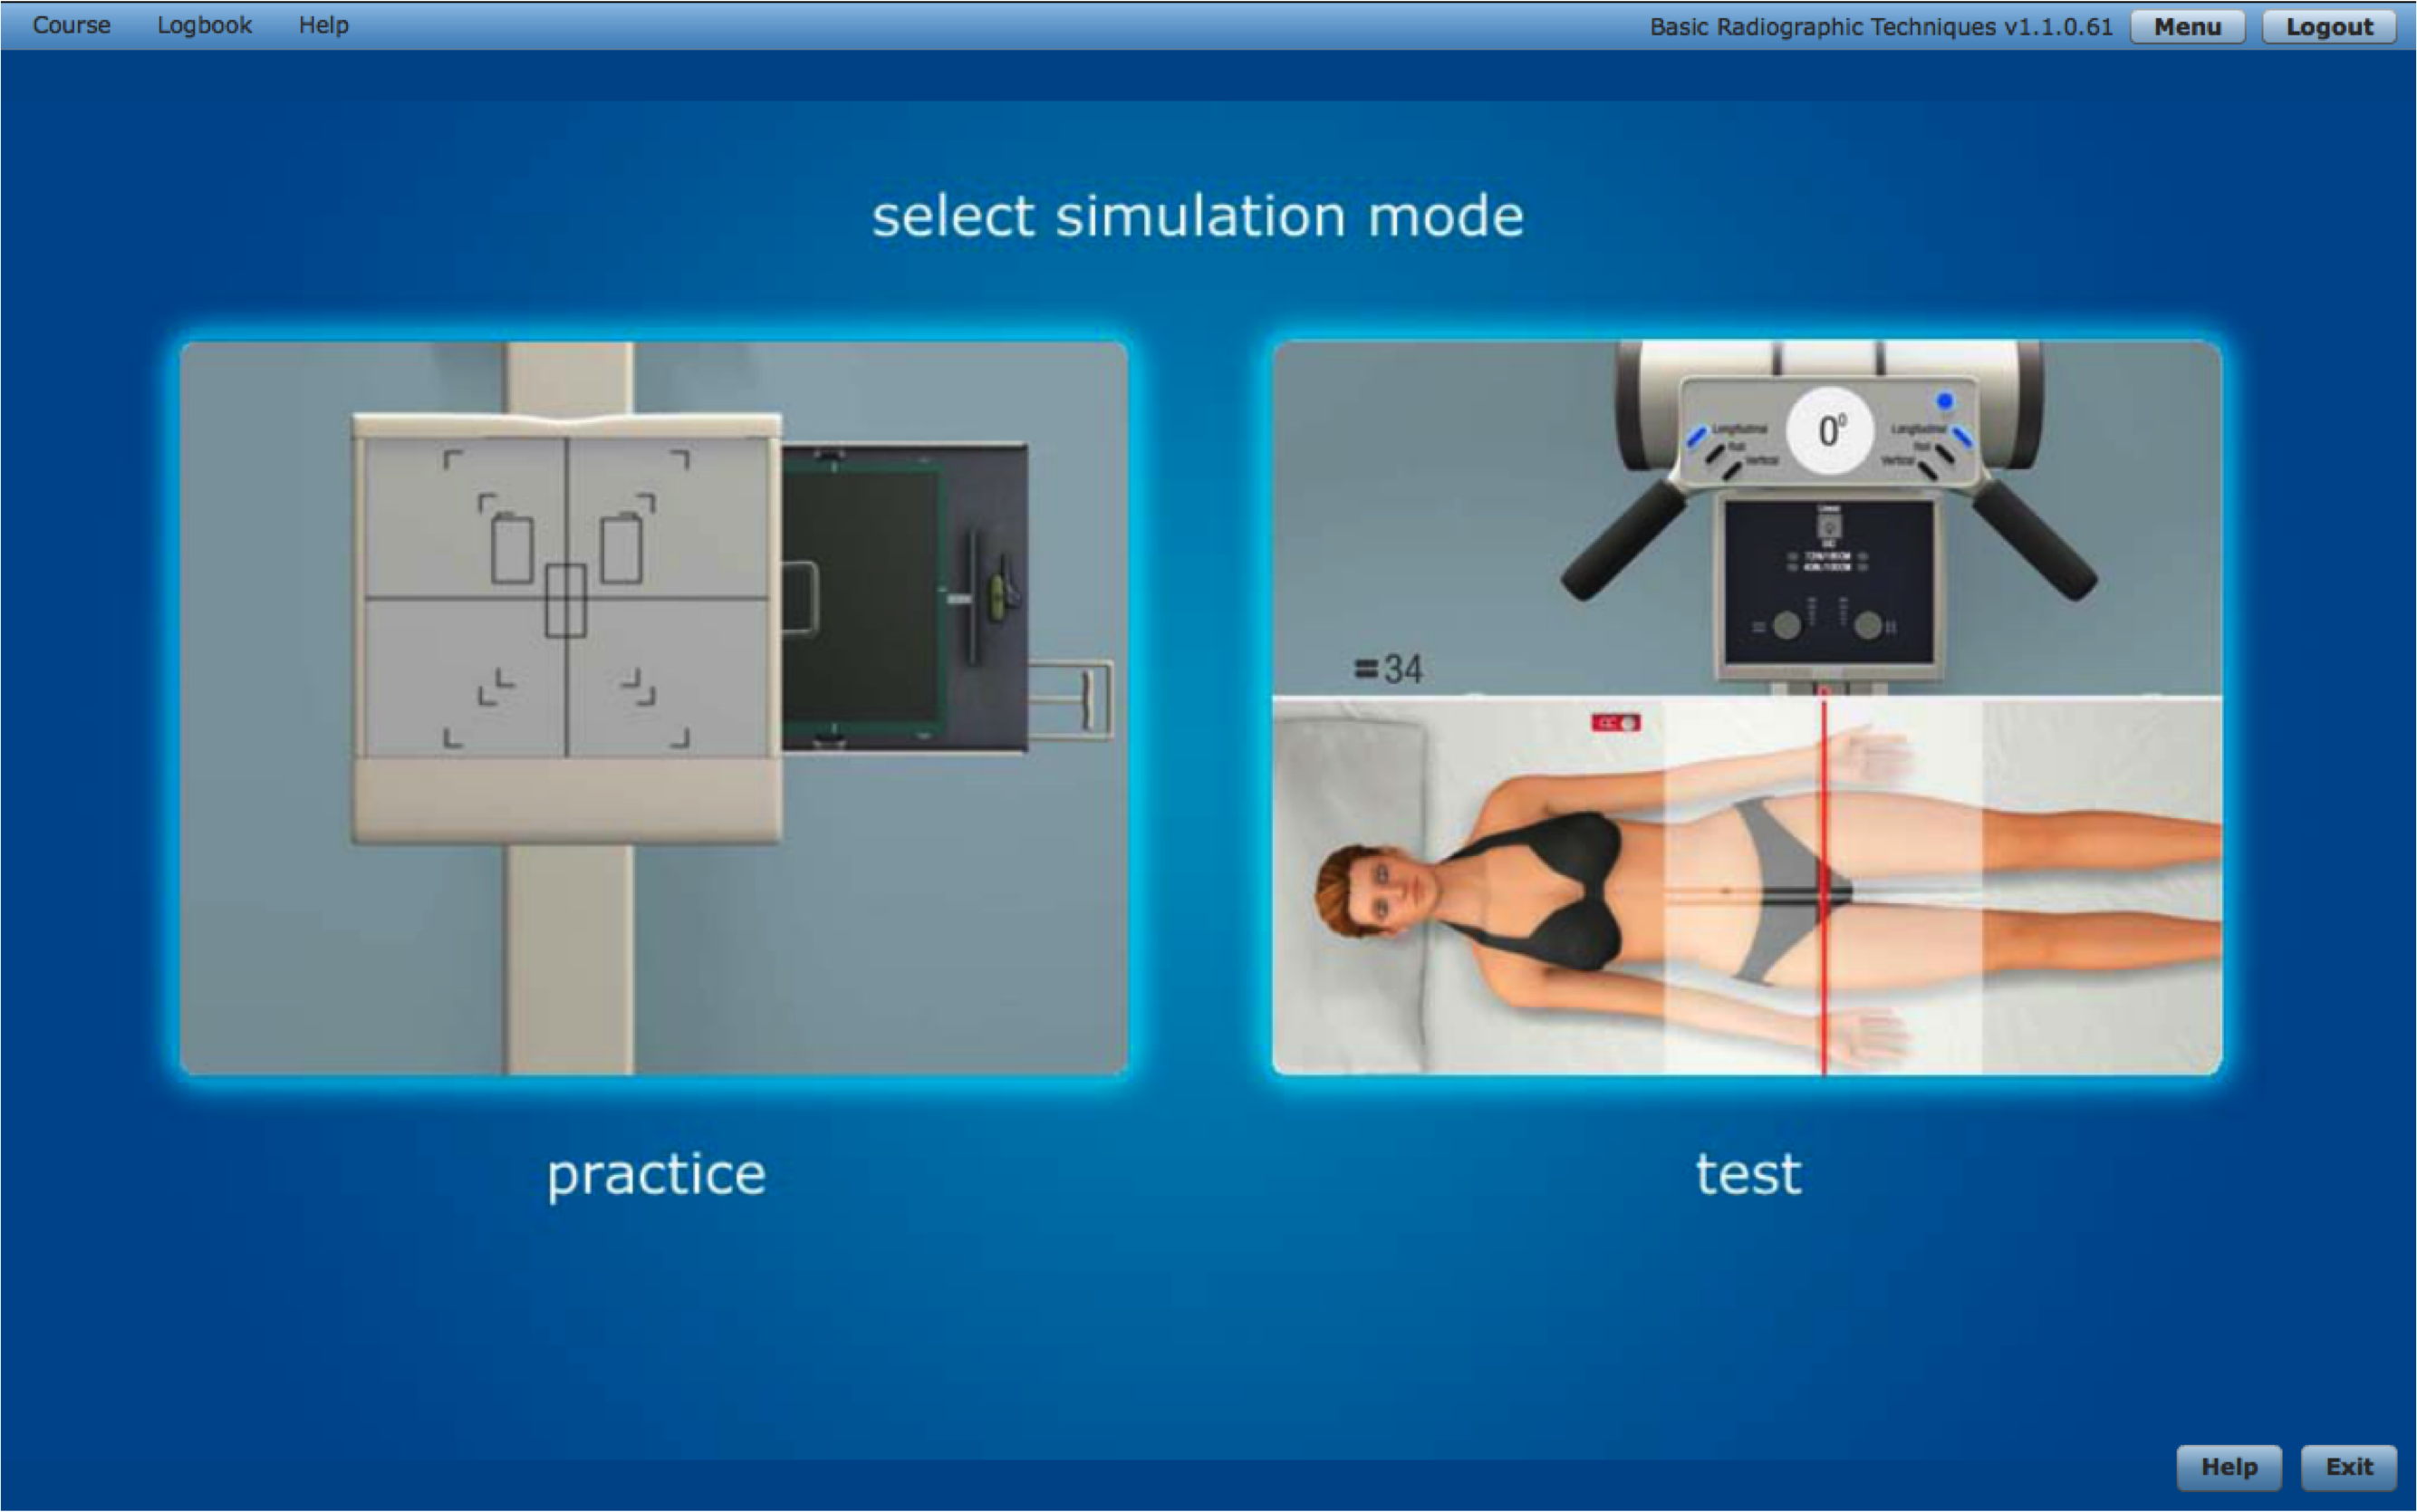 Rad tech · SIMTICS simulations available in two modes - learn and practice  with guidance, then test your